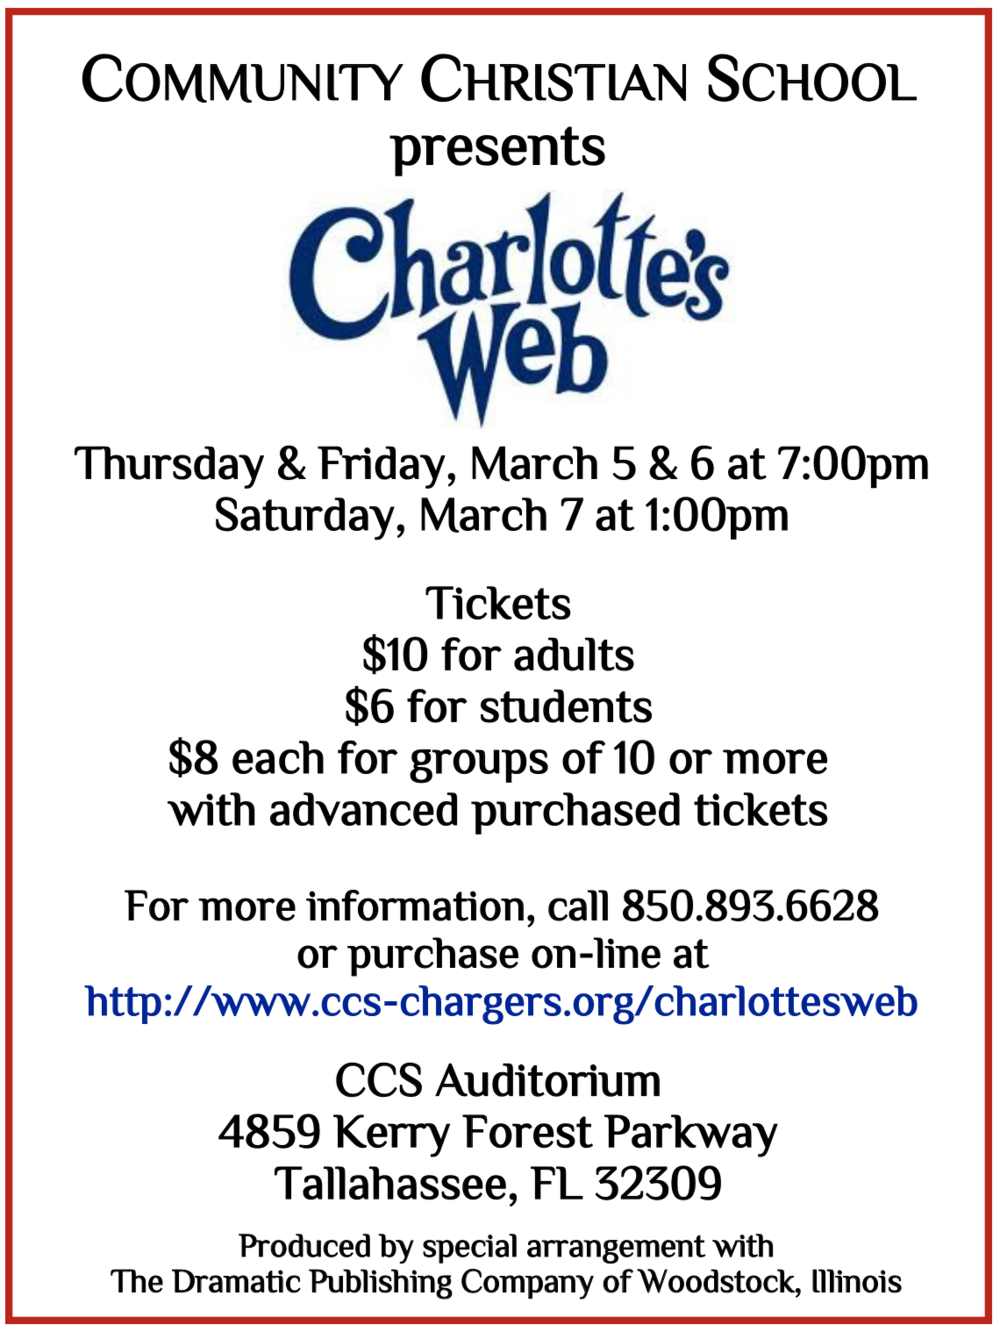 Charlottes Web quarter page flyer.png